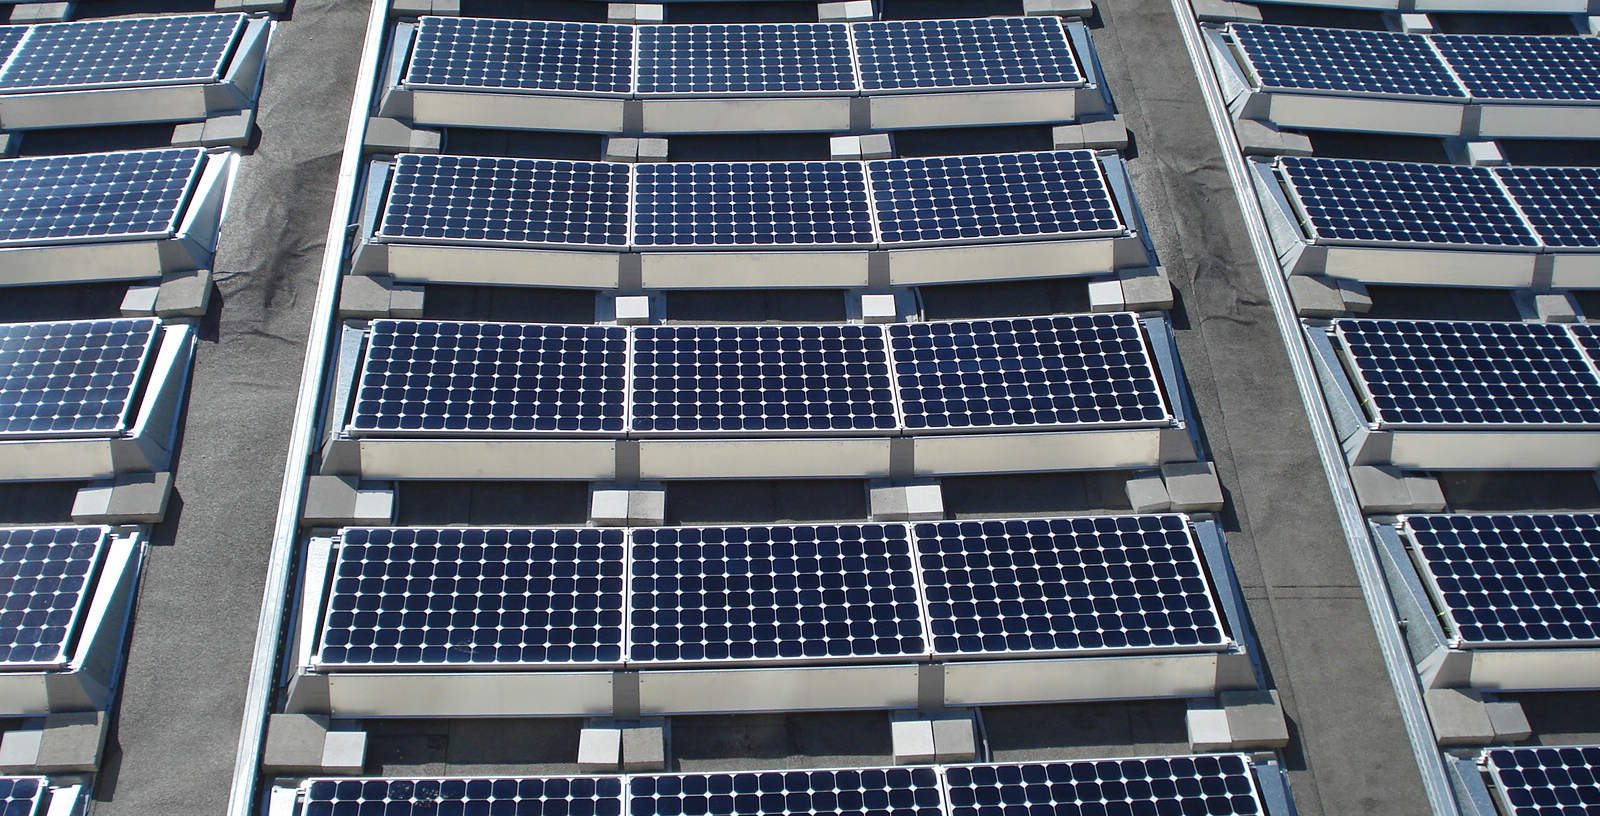 Technical_Due_Diligence_Rooftop_PV_Spain_Caja_Madrid_IDOM_003